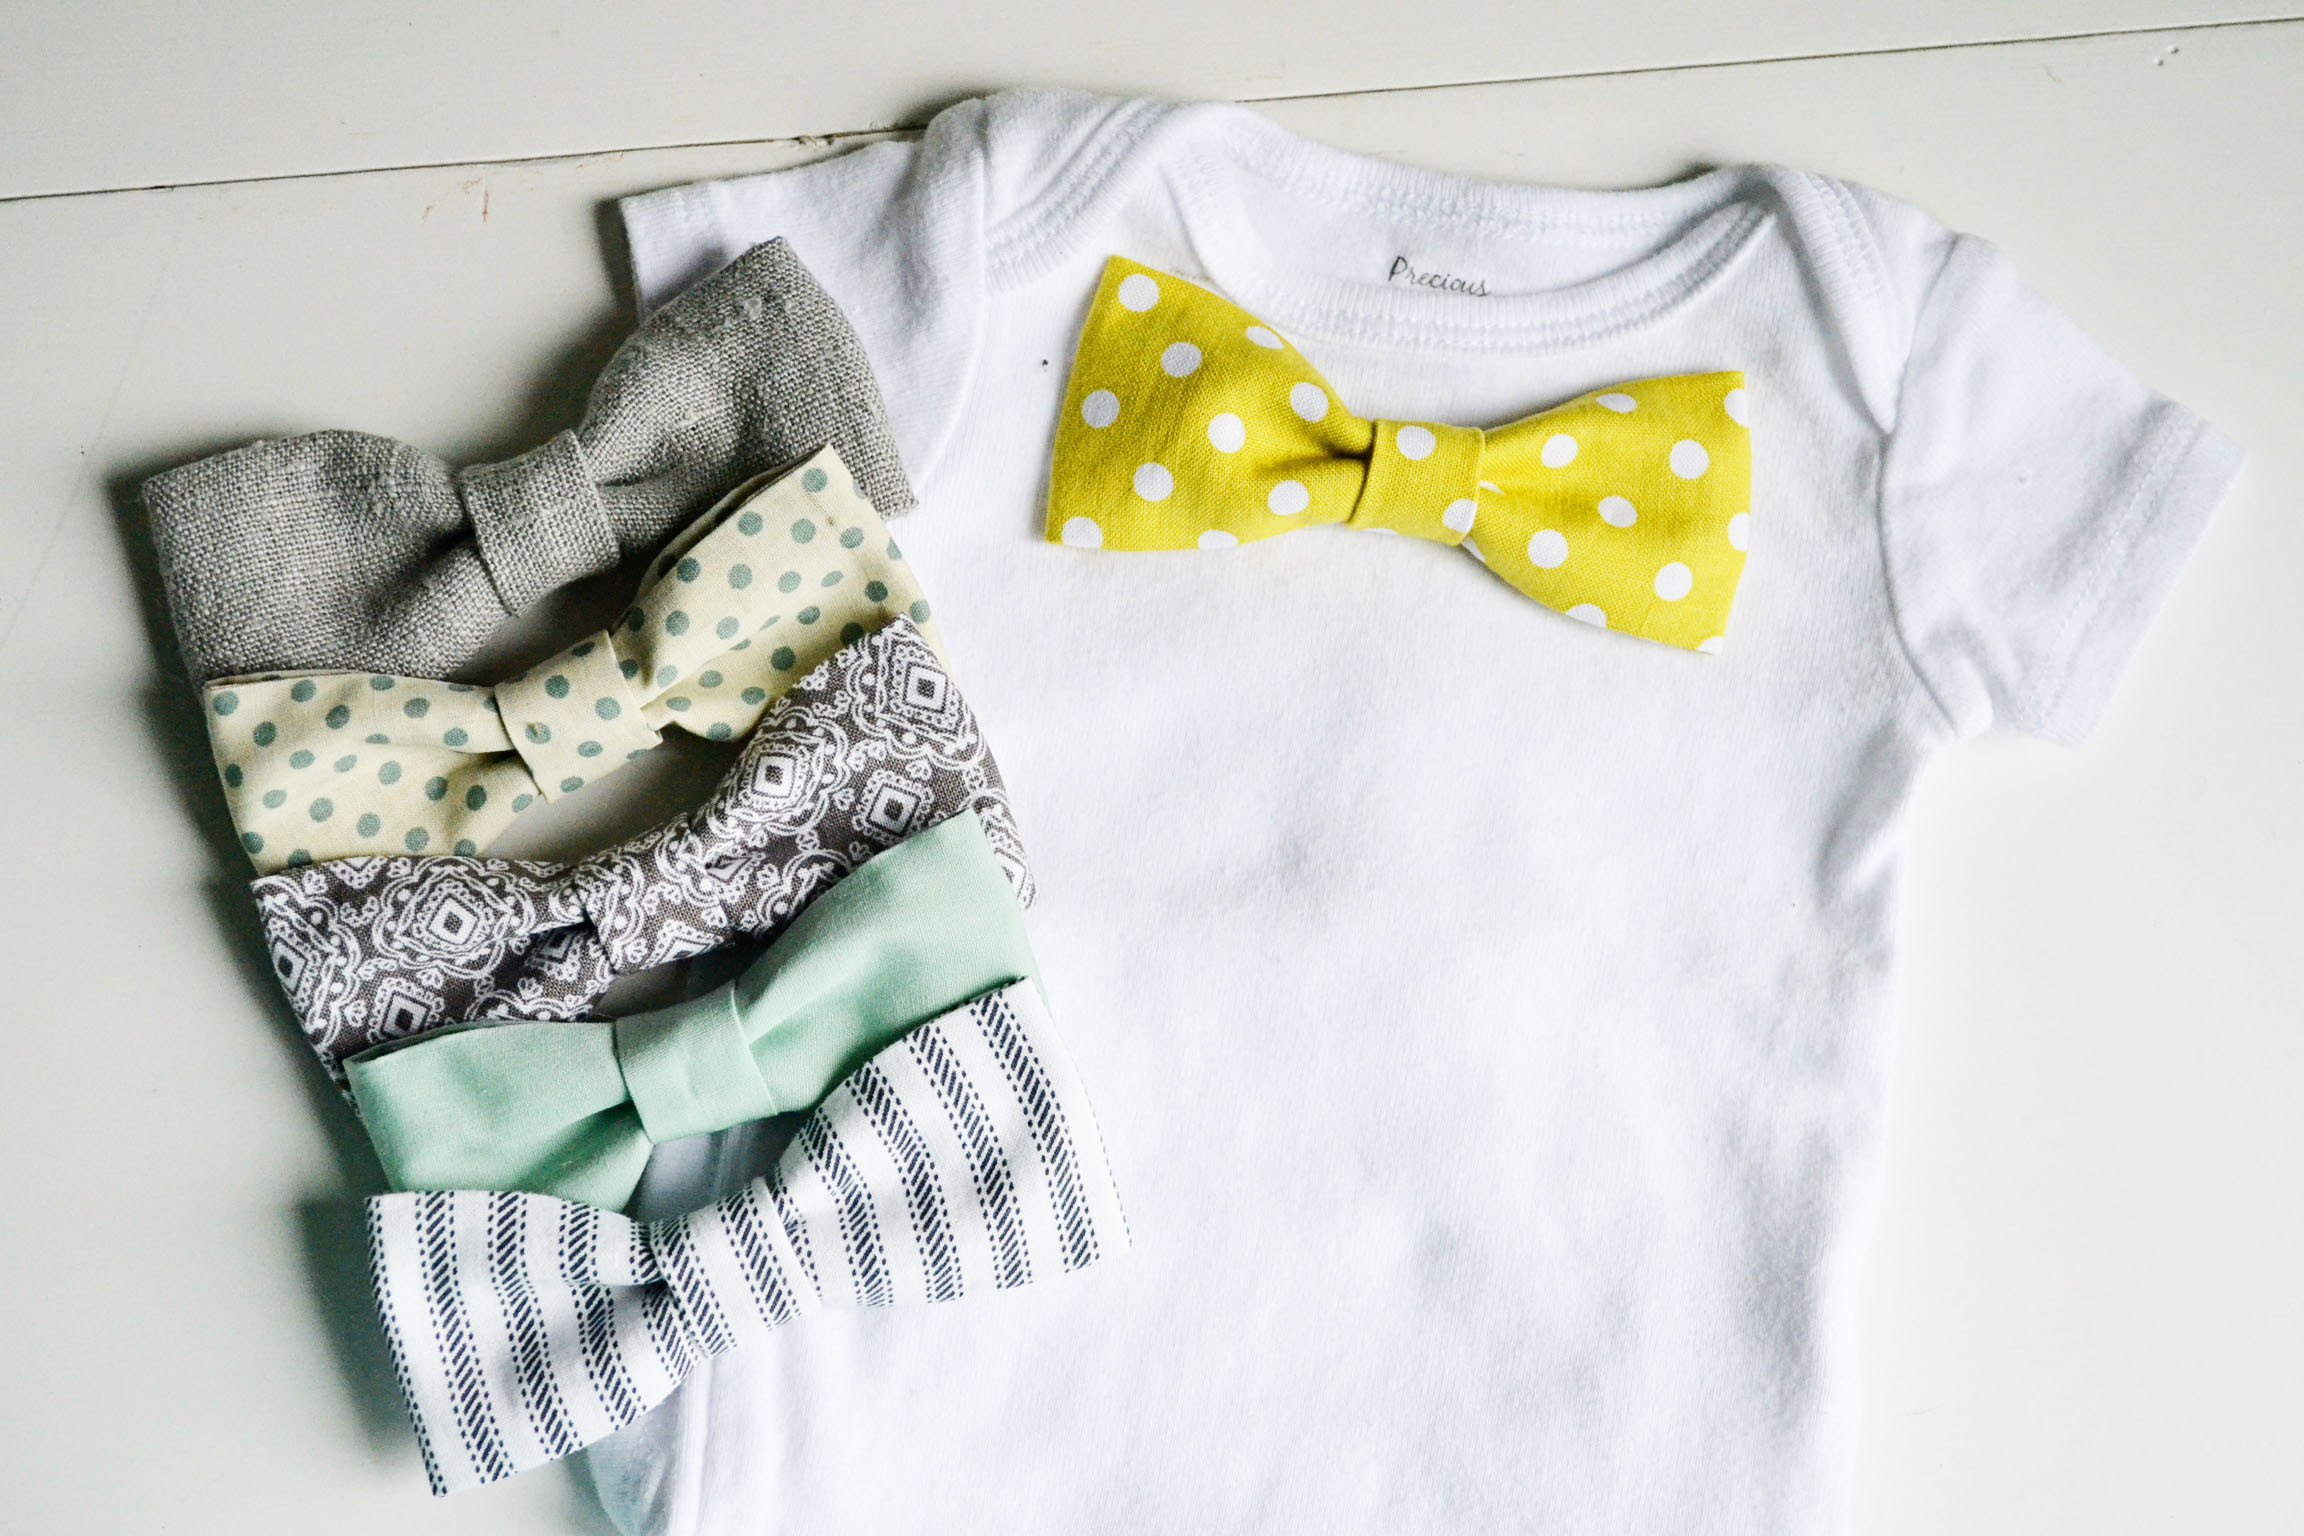 Best ideas about DIY Baby Bow Tie . Save or Pin bow tie onesie Now.